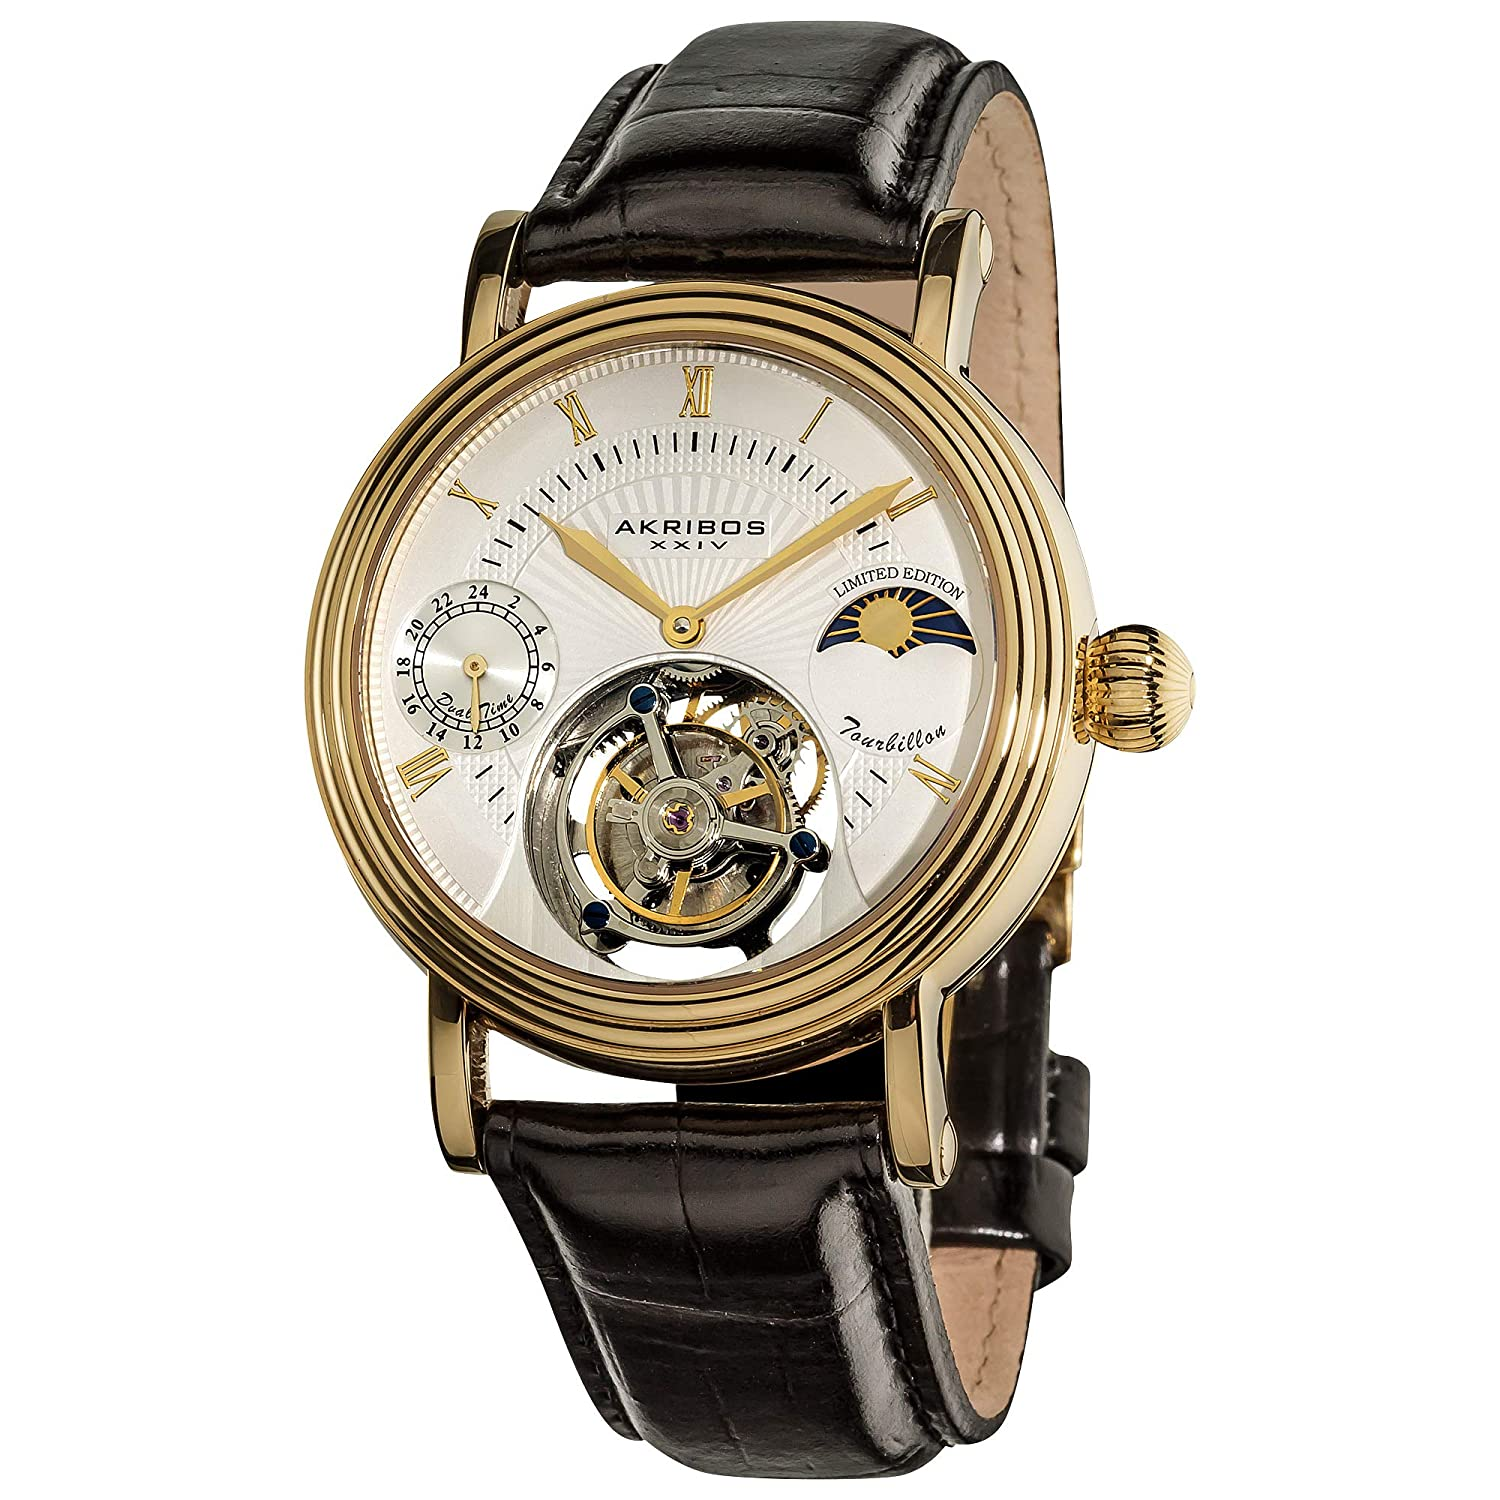 Akribos Mechanical Tourbillon Watch - Skeletonized Face with ...